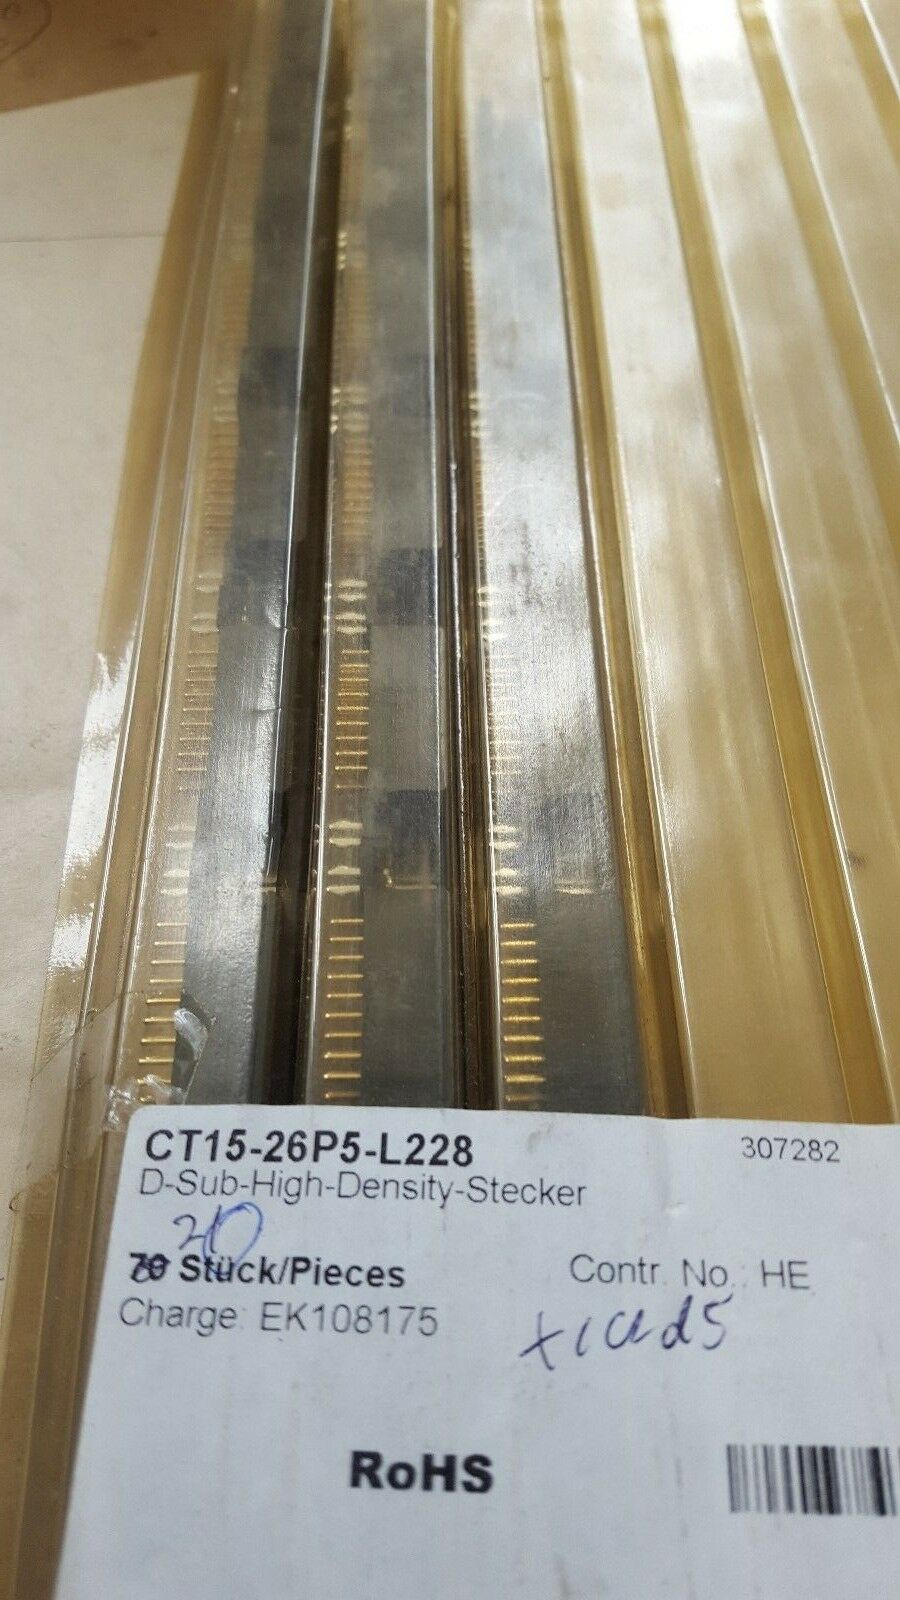 20 PCS OF FCT CT15-26P5-L228 D-Sub High Density Connectors (U3.5B4)